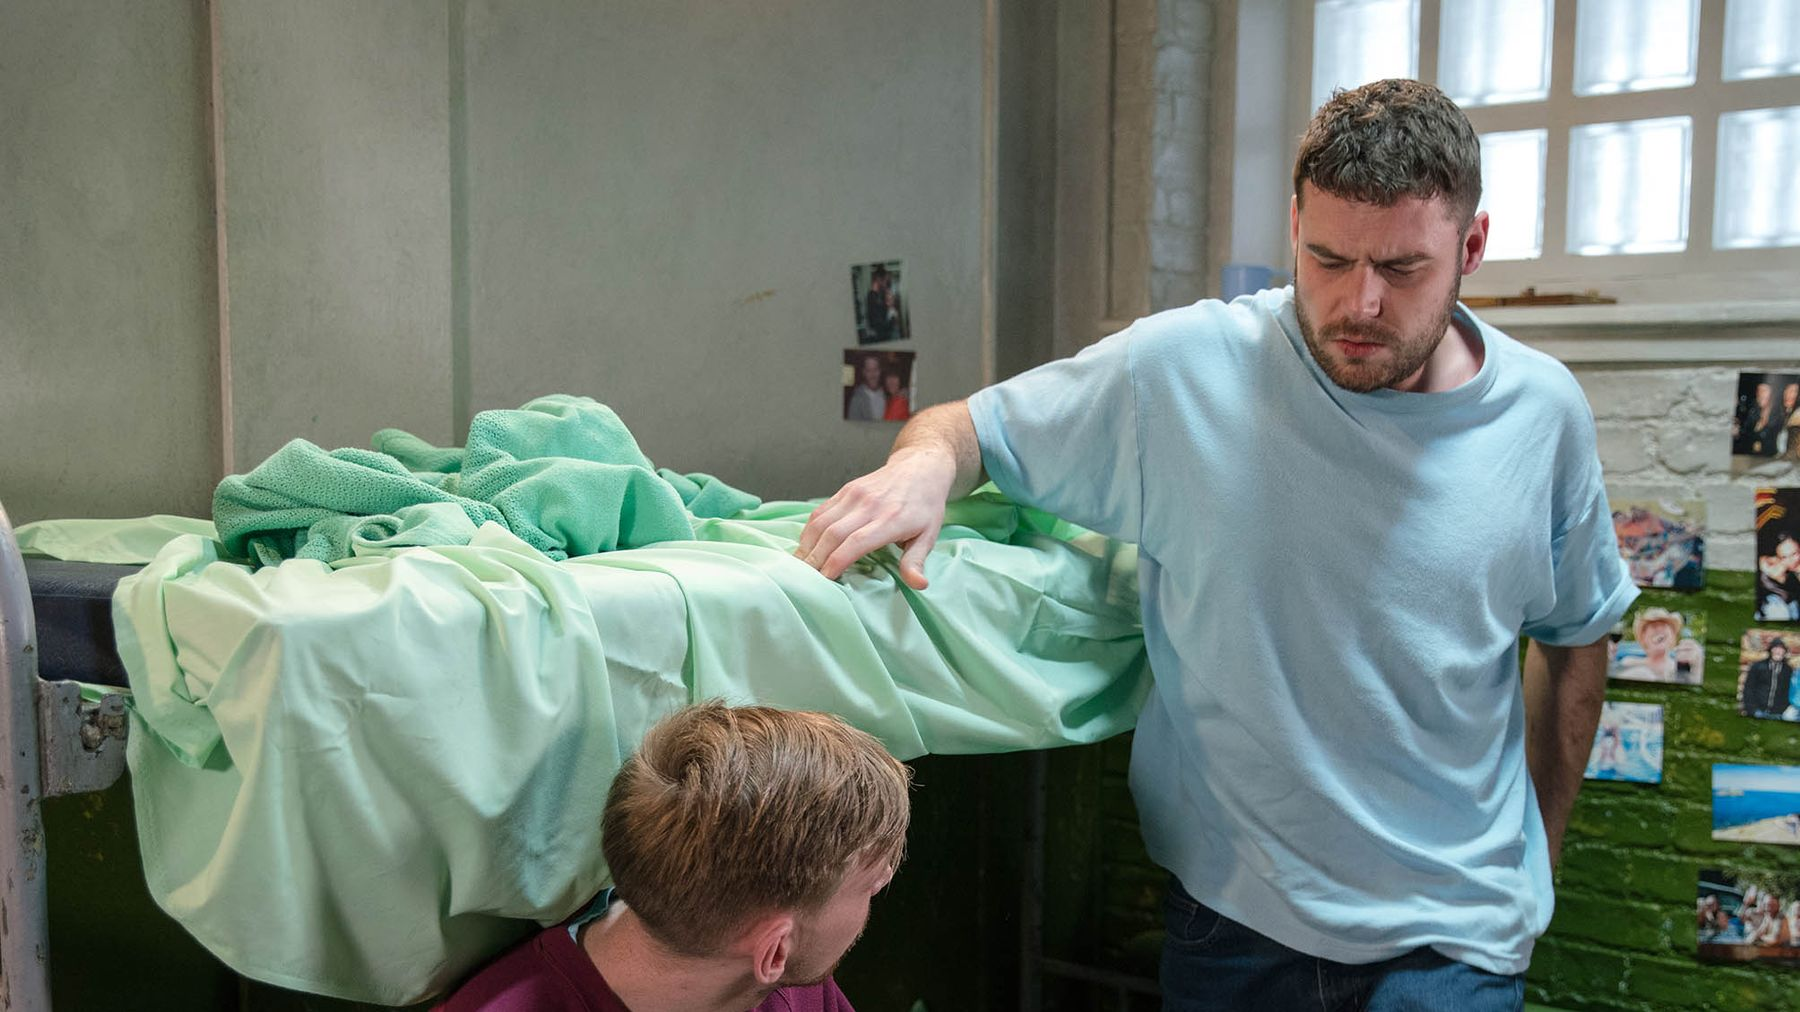 Emmerdale Spoilers: Will troubled Aaron Dingle turn to DRUGS as he